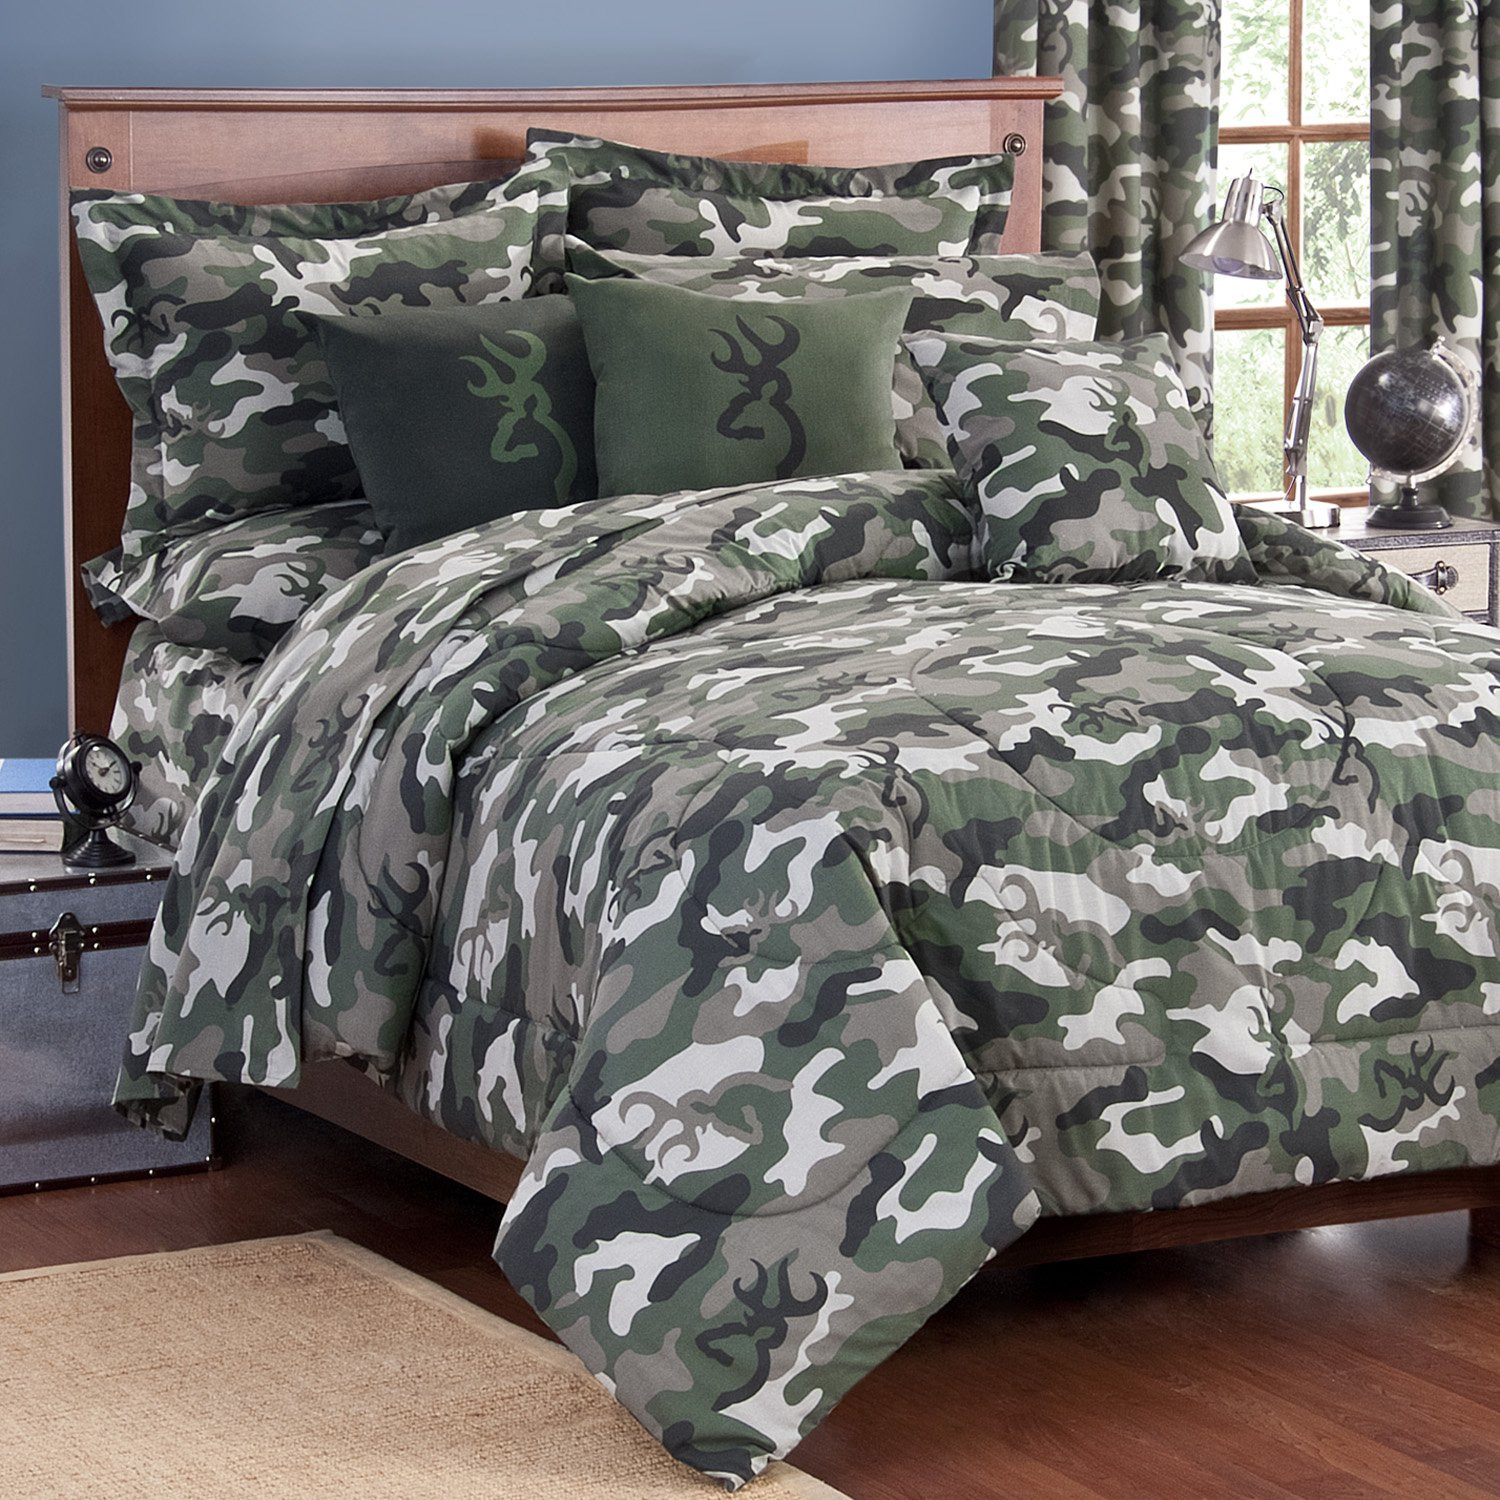 Military camouflage bedding totally kids totally for Camo kids bedroom ideas